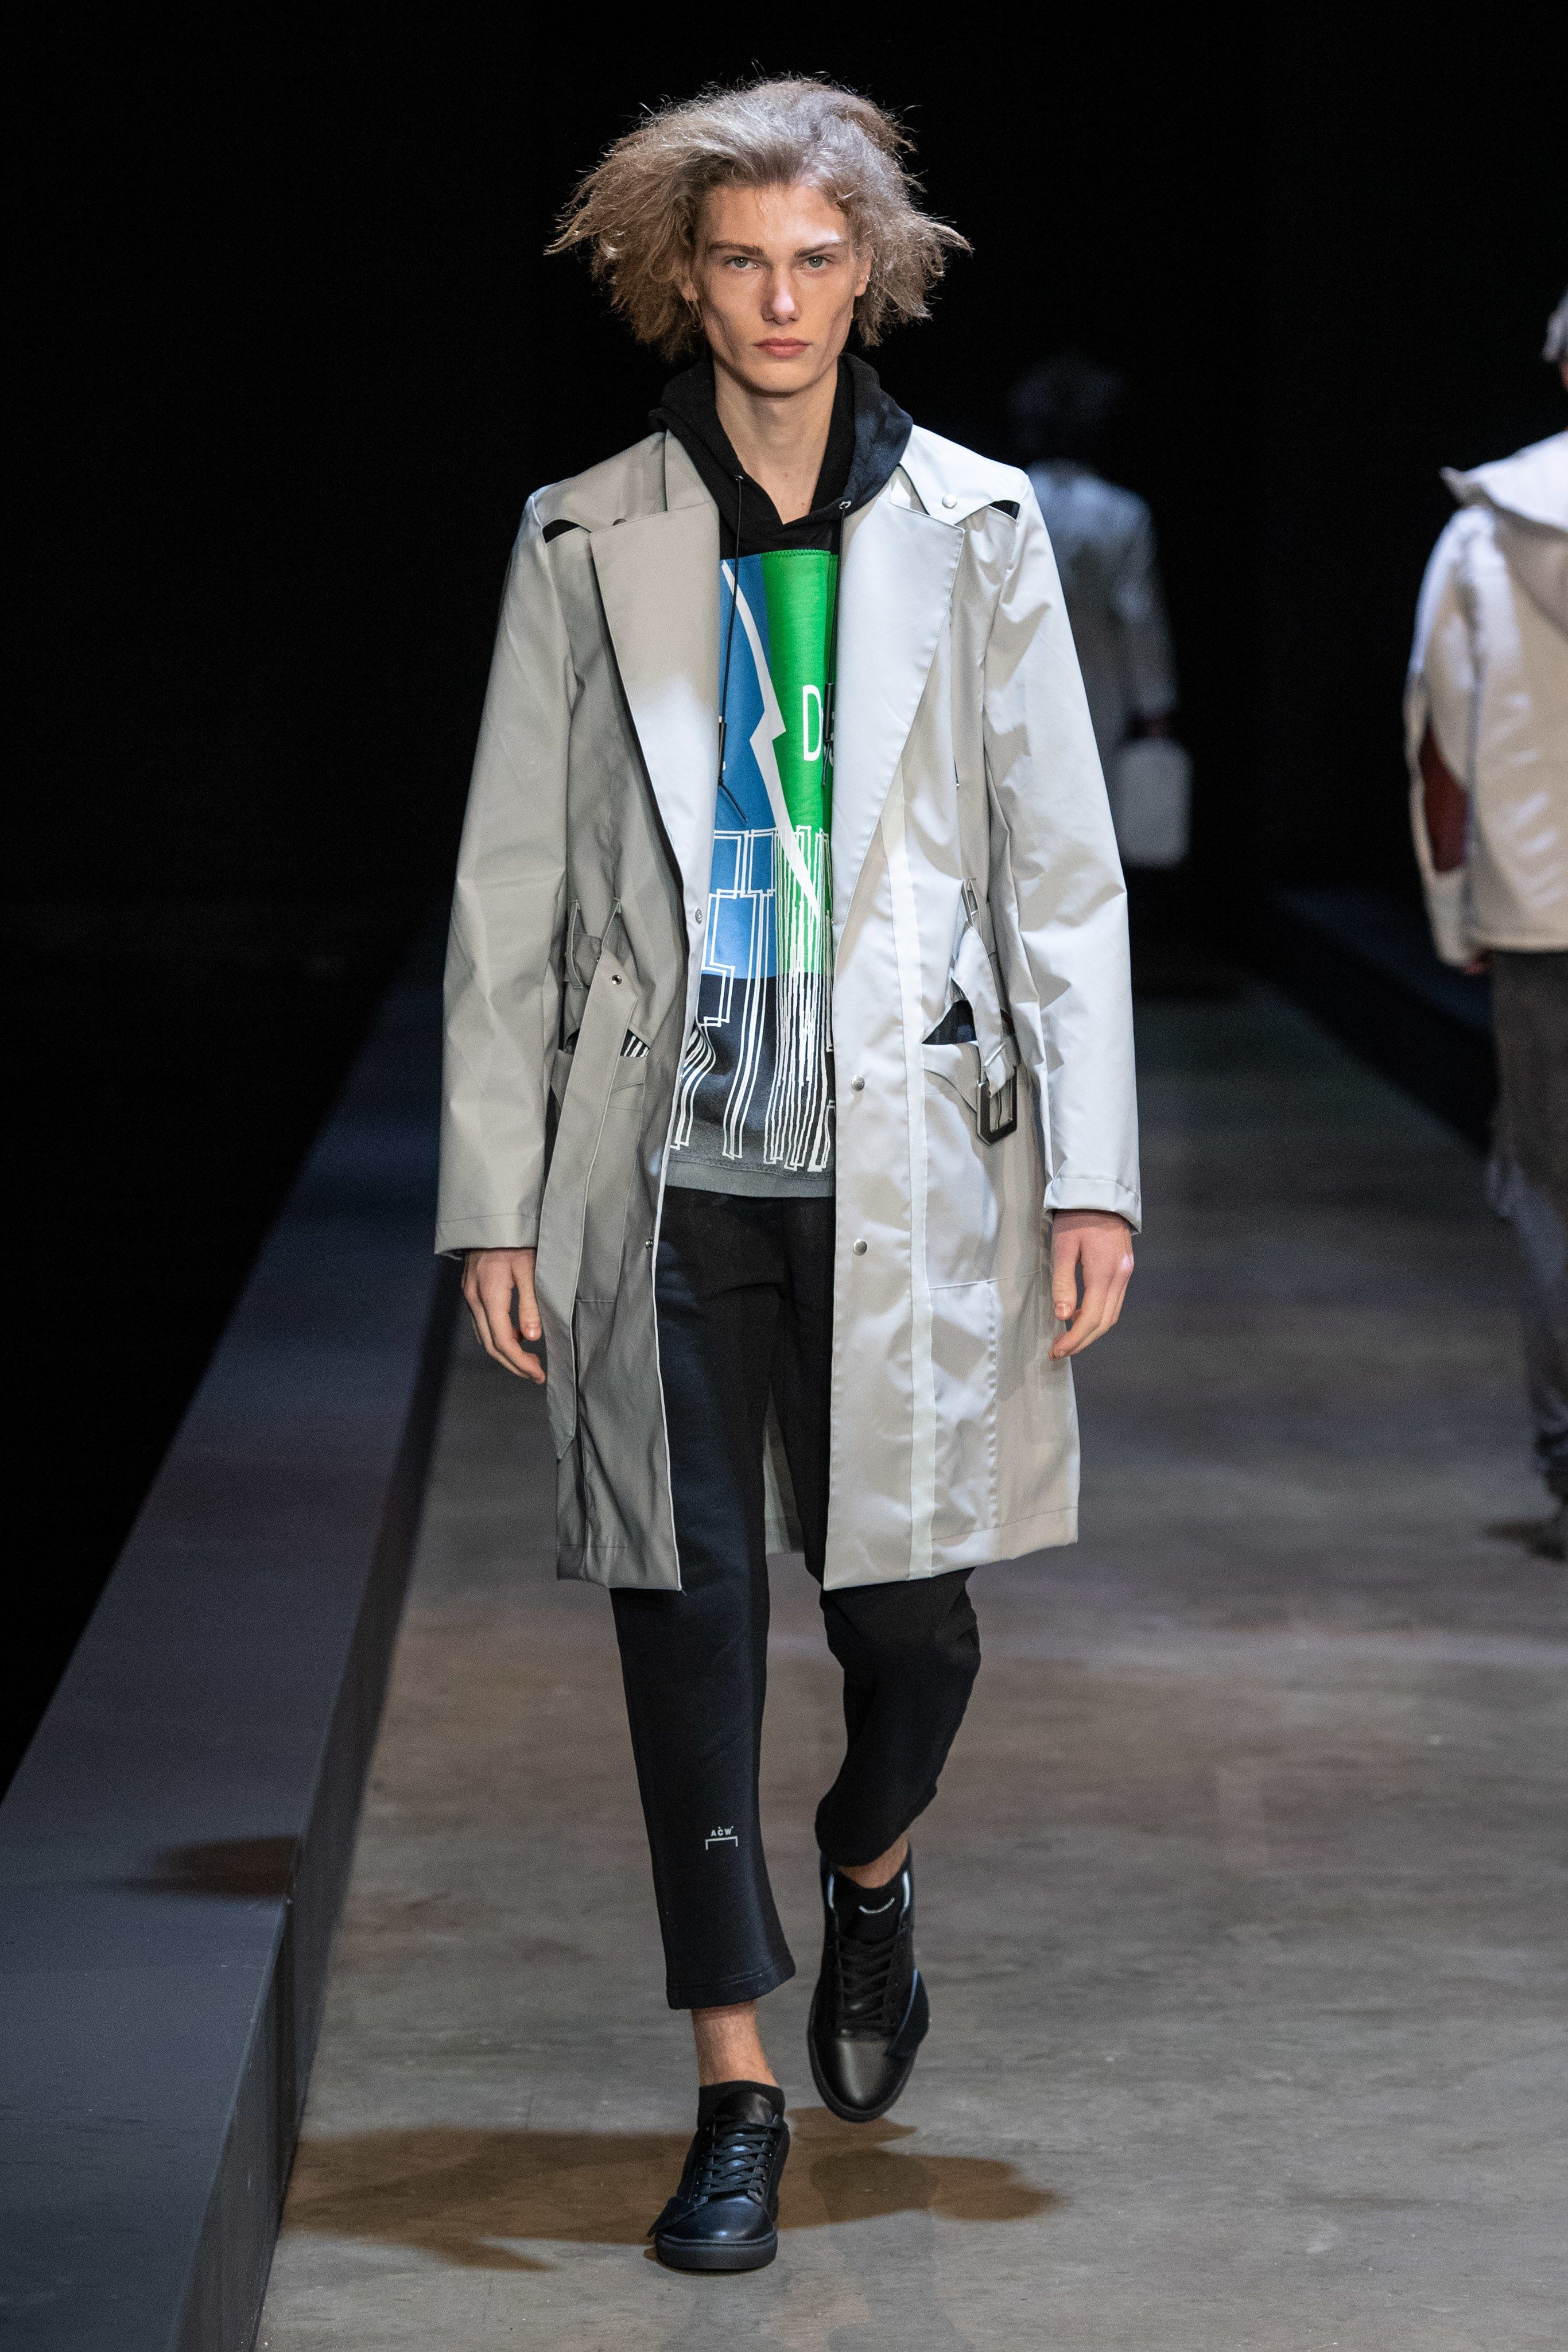 Fall row savile runway advise dress for spring in 2019